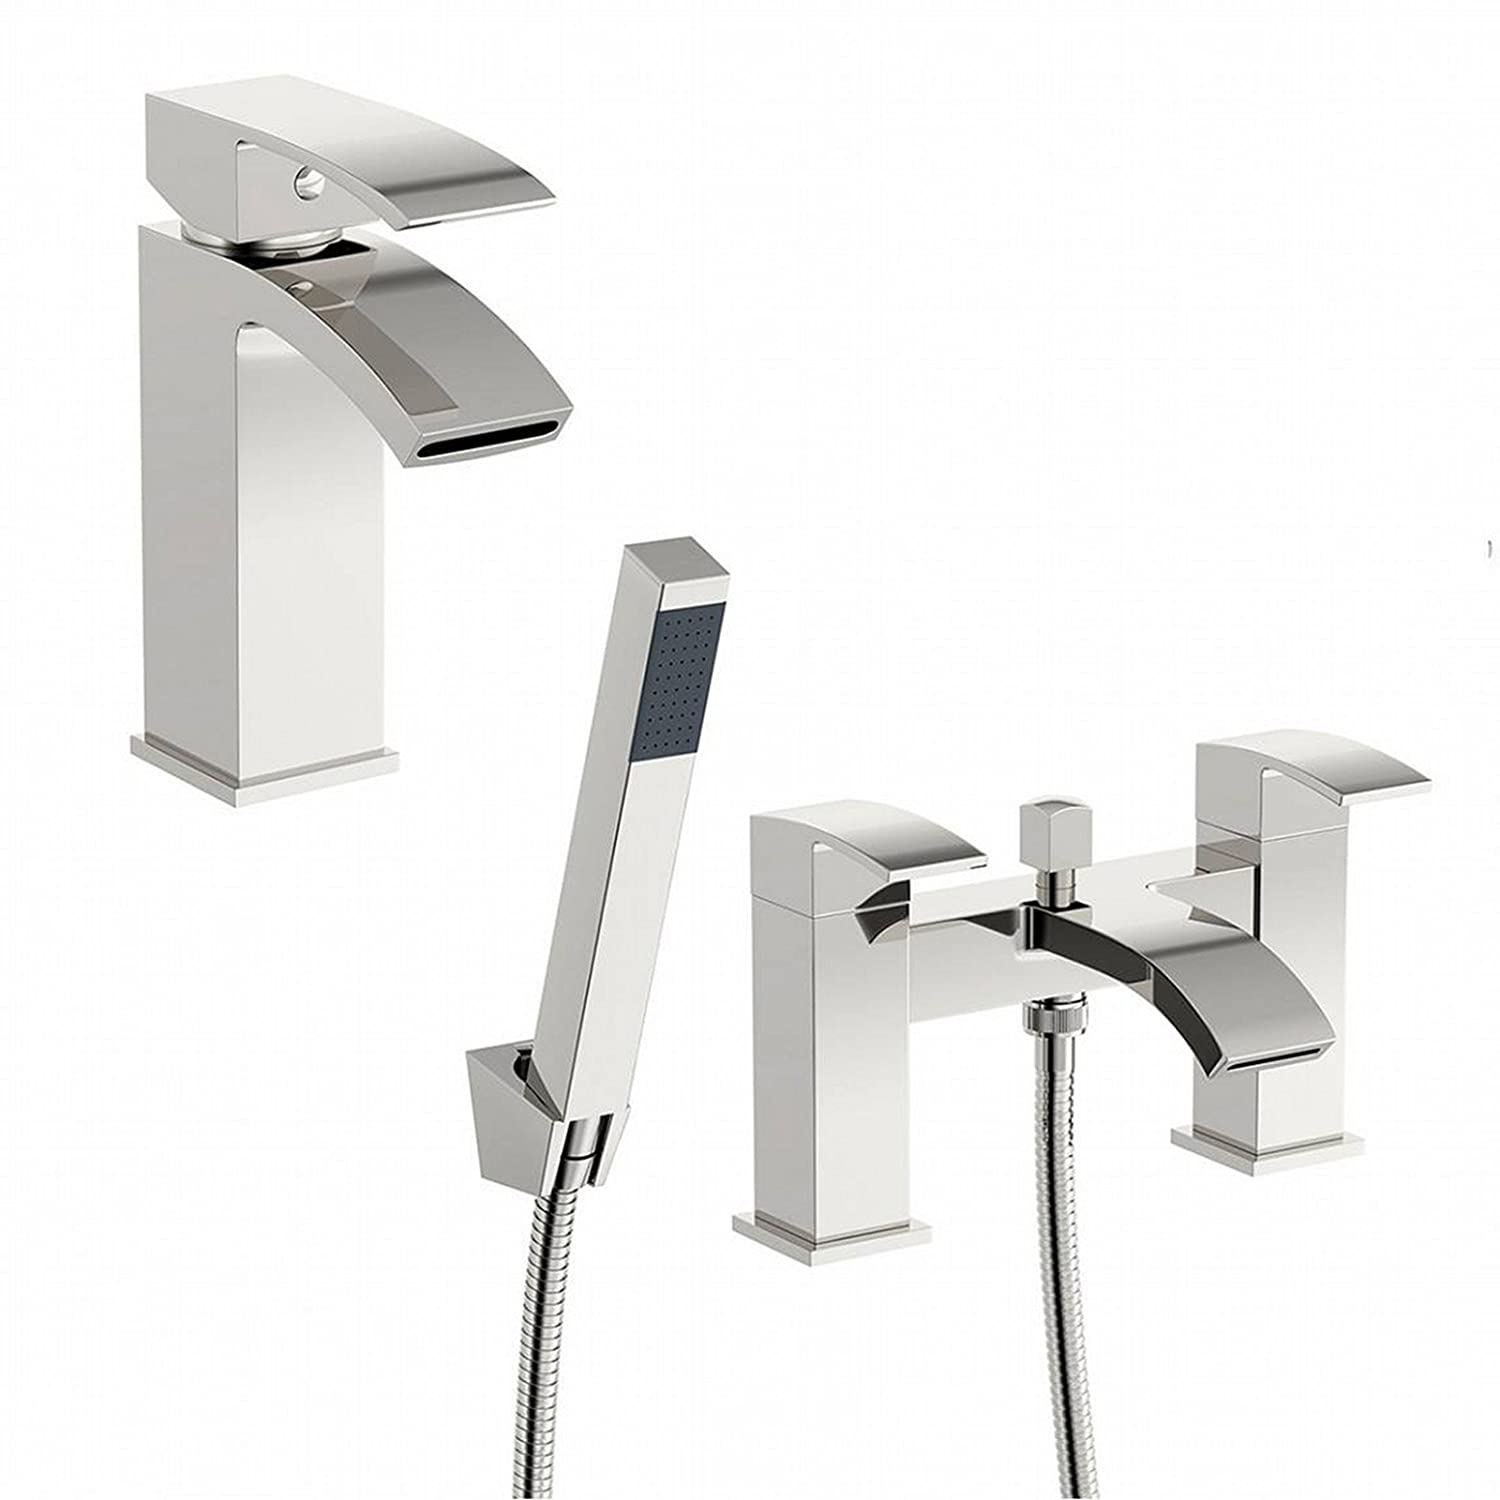 ENKI Square Bath Filler Tap with Shower Head + Basin Mixer Tap Pack CASCADE IMDSW080CH/2-IMDSW080CH/3